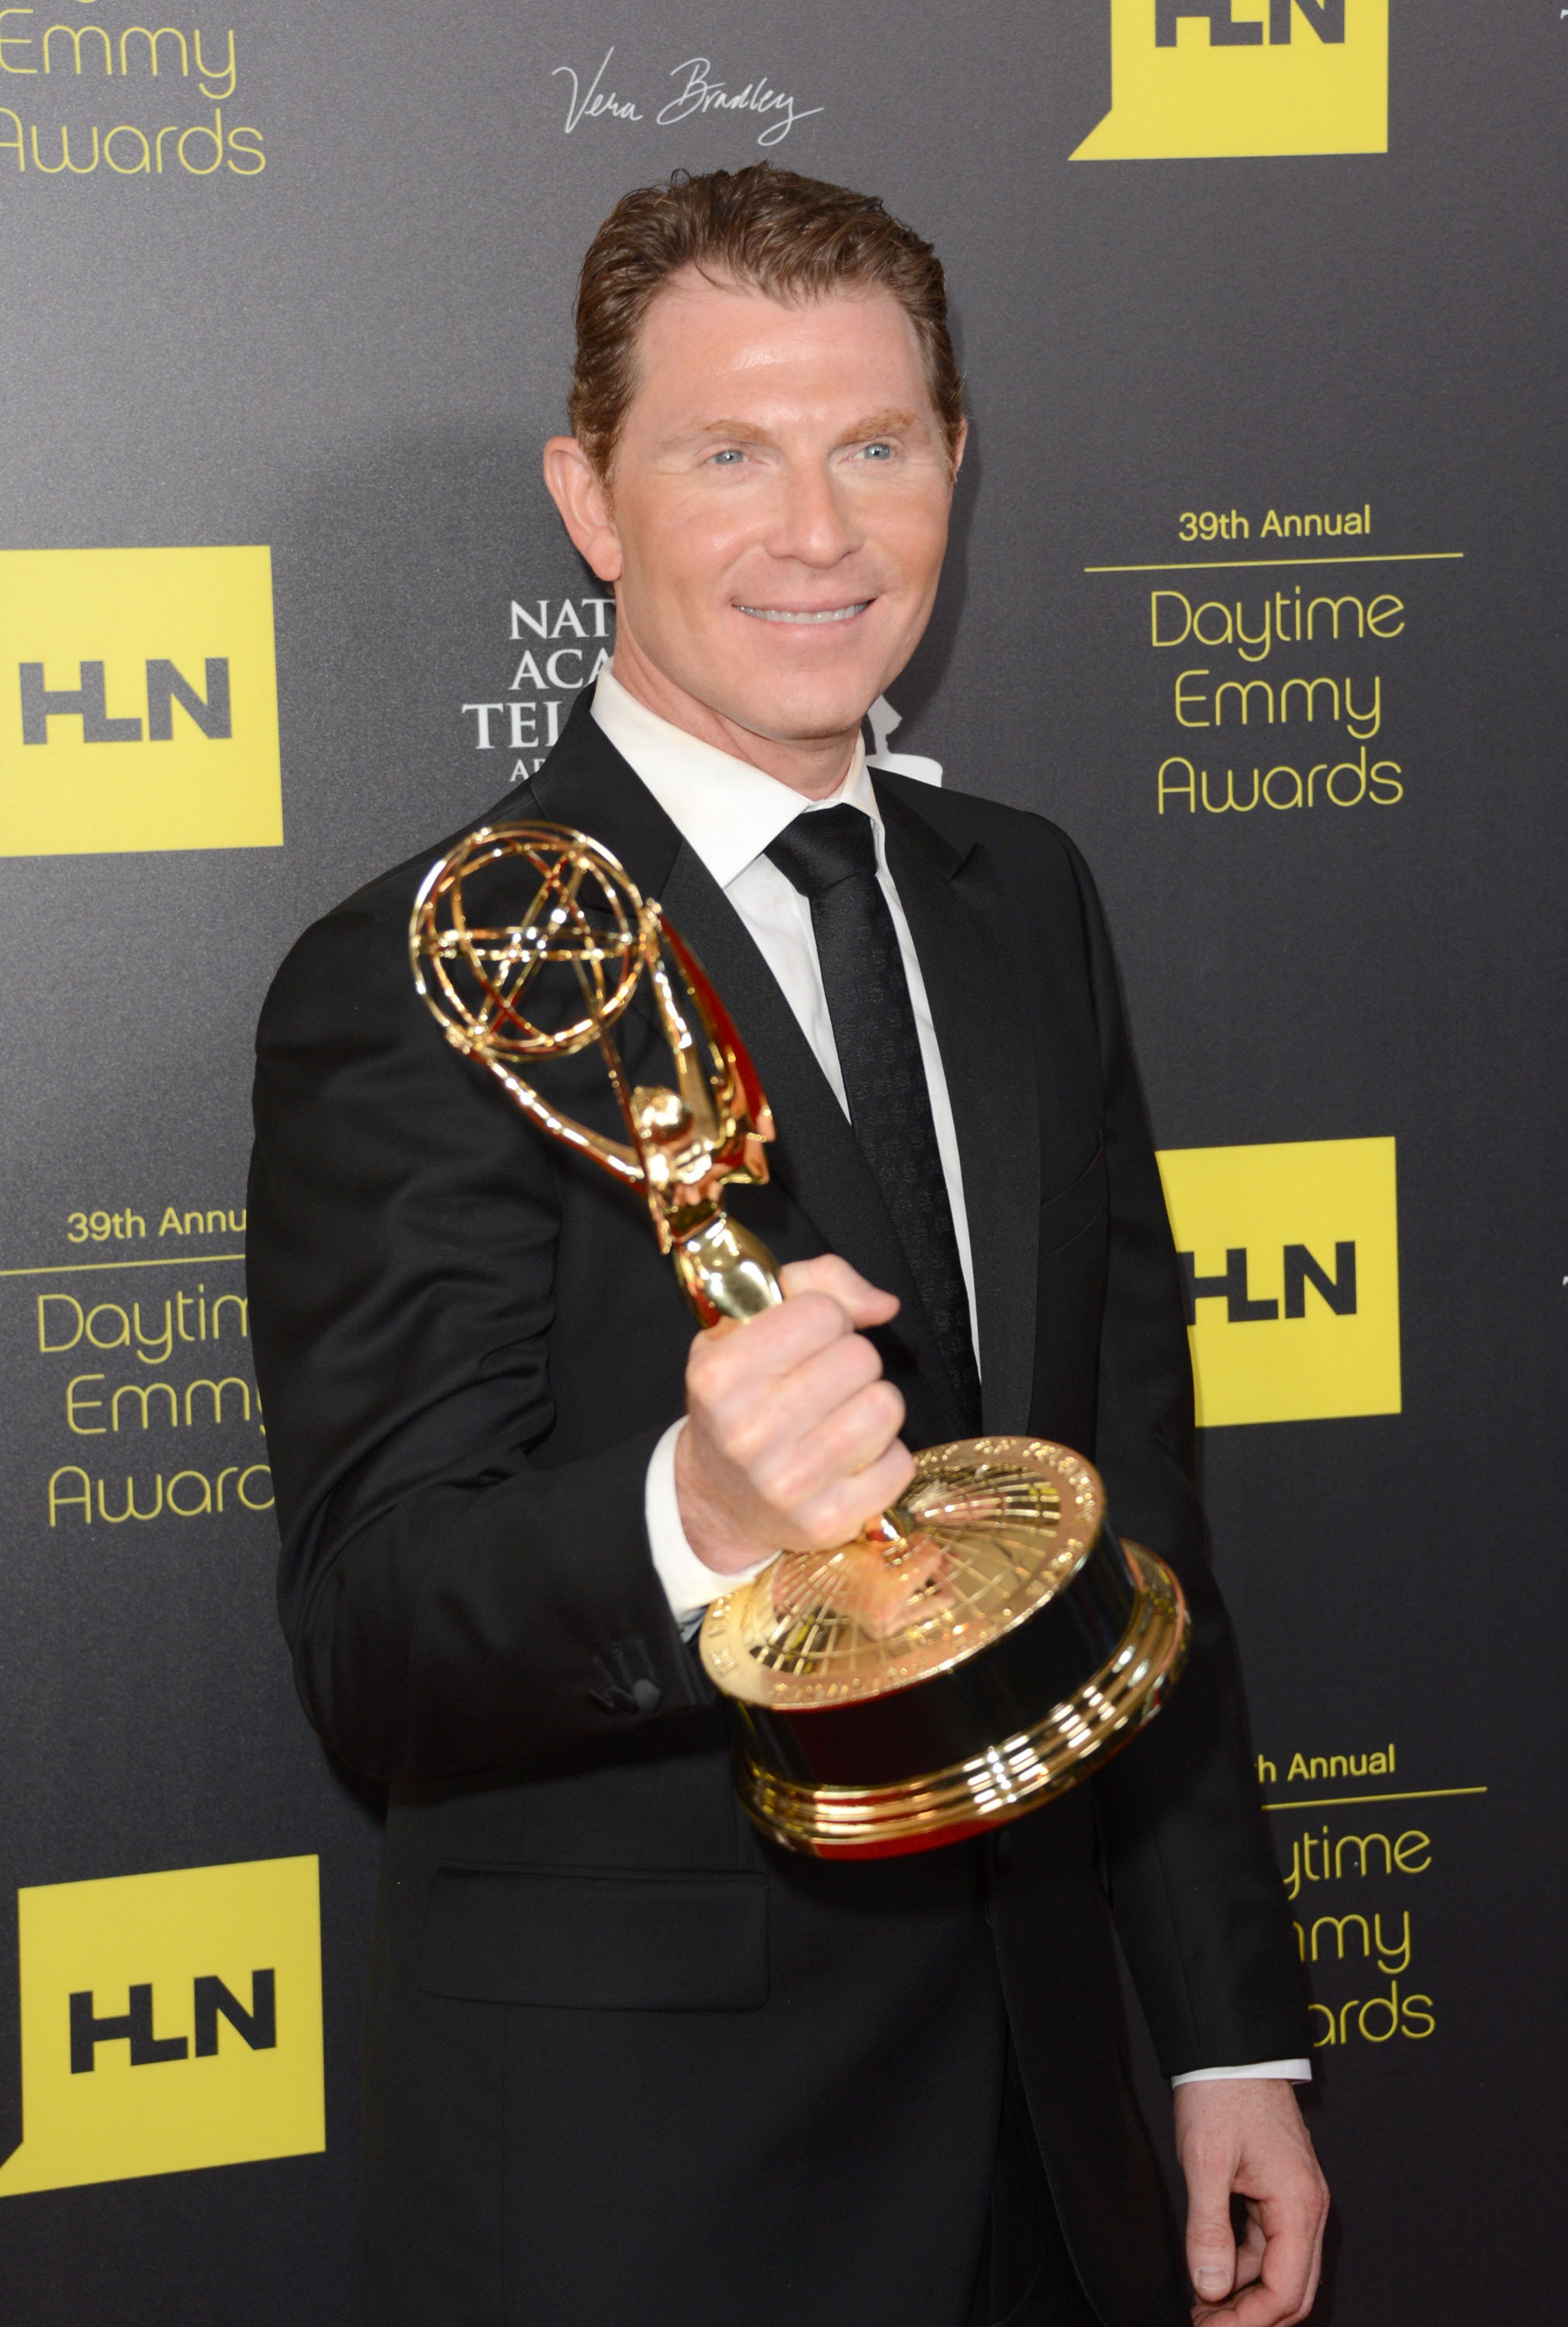 BEVERLY HILLS, CA - JUNE 23: Bobby Flay poses in the press room at The 39th Annual Daytime Emmy Awards from Executive Producer Gabriel Gornell of LocoDistro and broadcast on HLN held at The Beverly Hilton Hotel on June 23, 2012 in Beverly Hills, California.